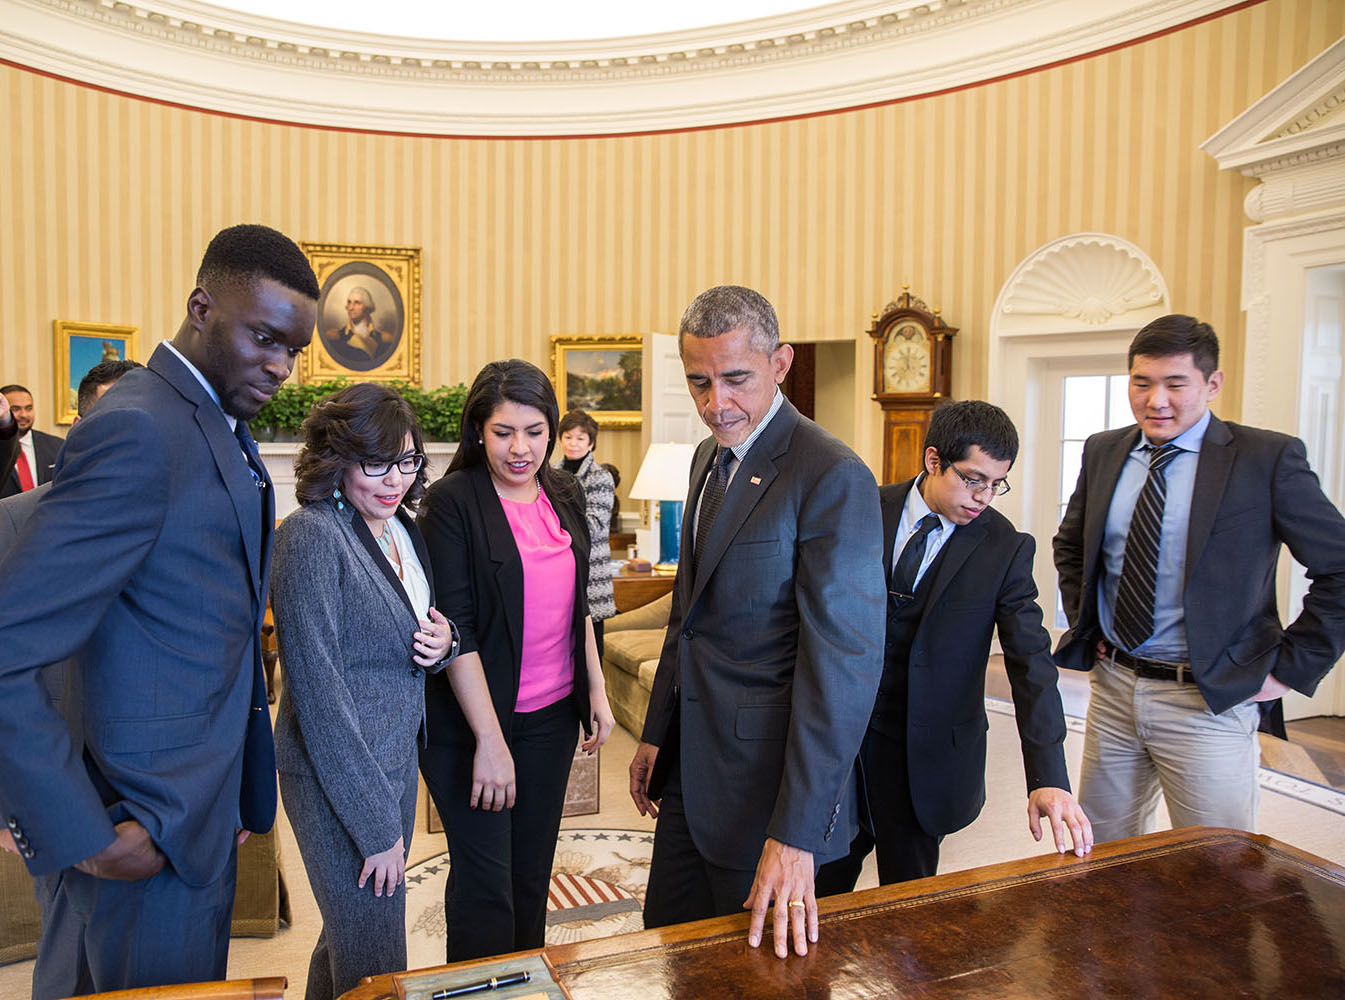 Obama shows DREAMers around Oval Office.